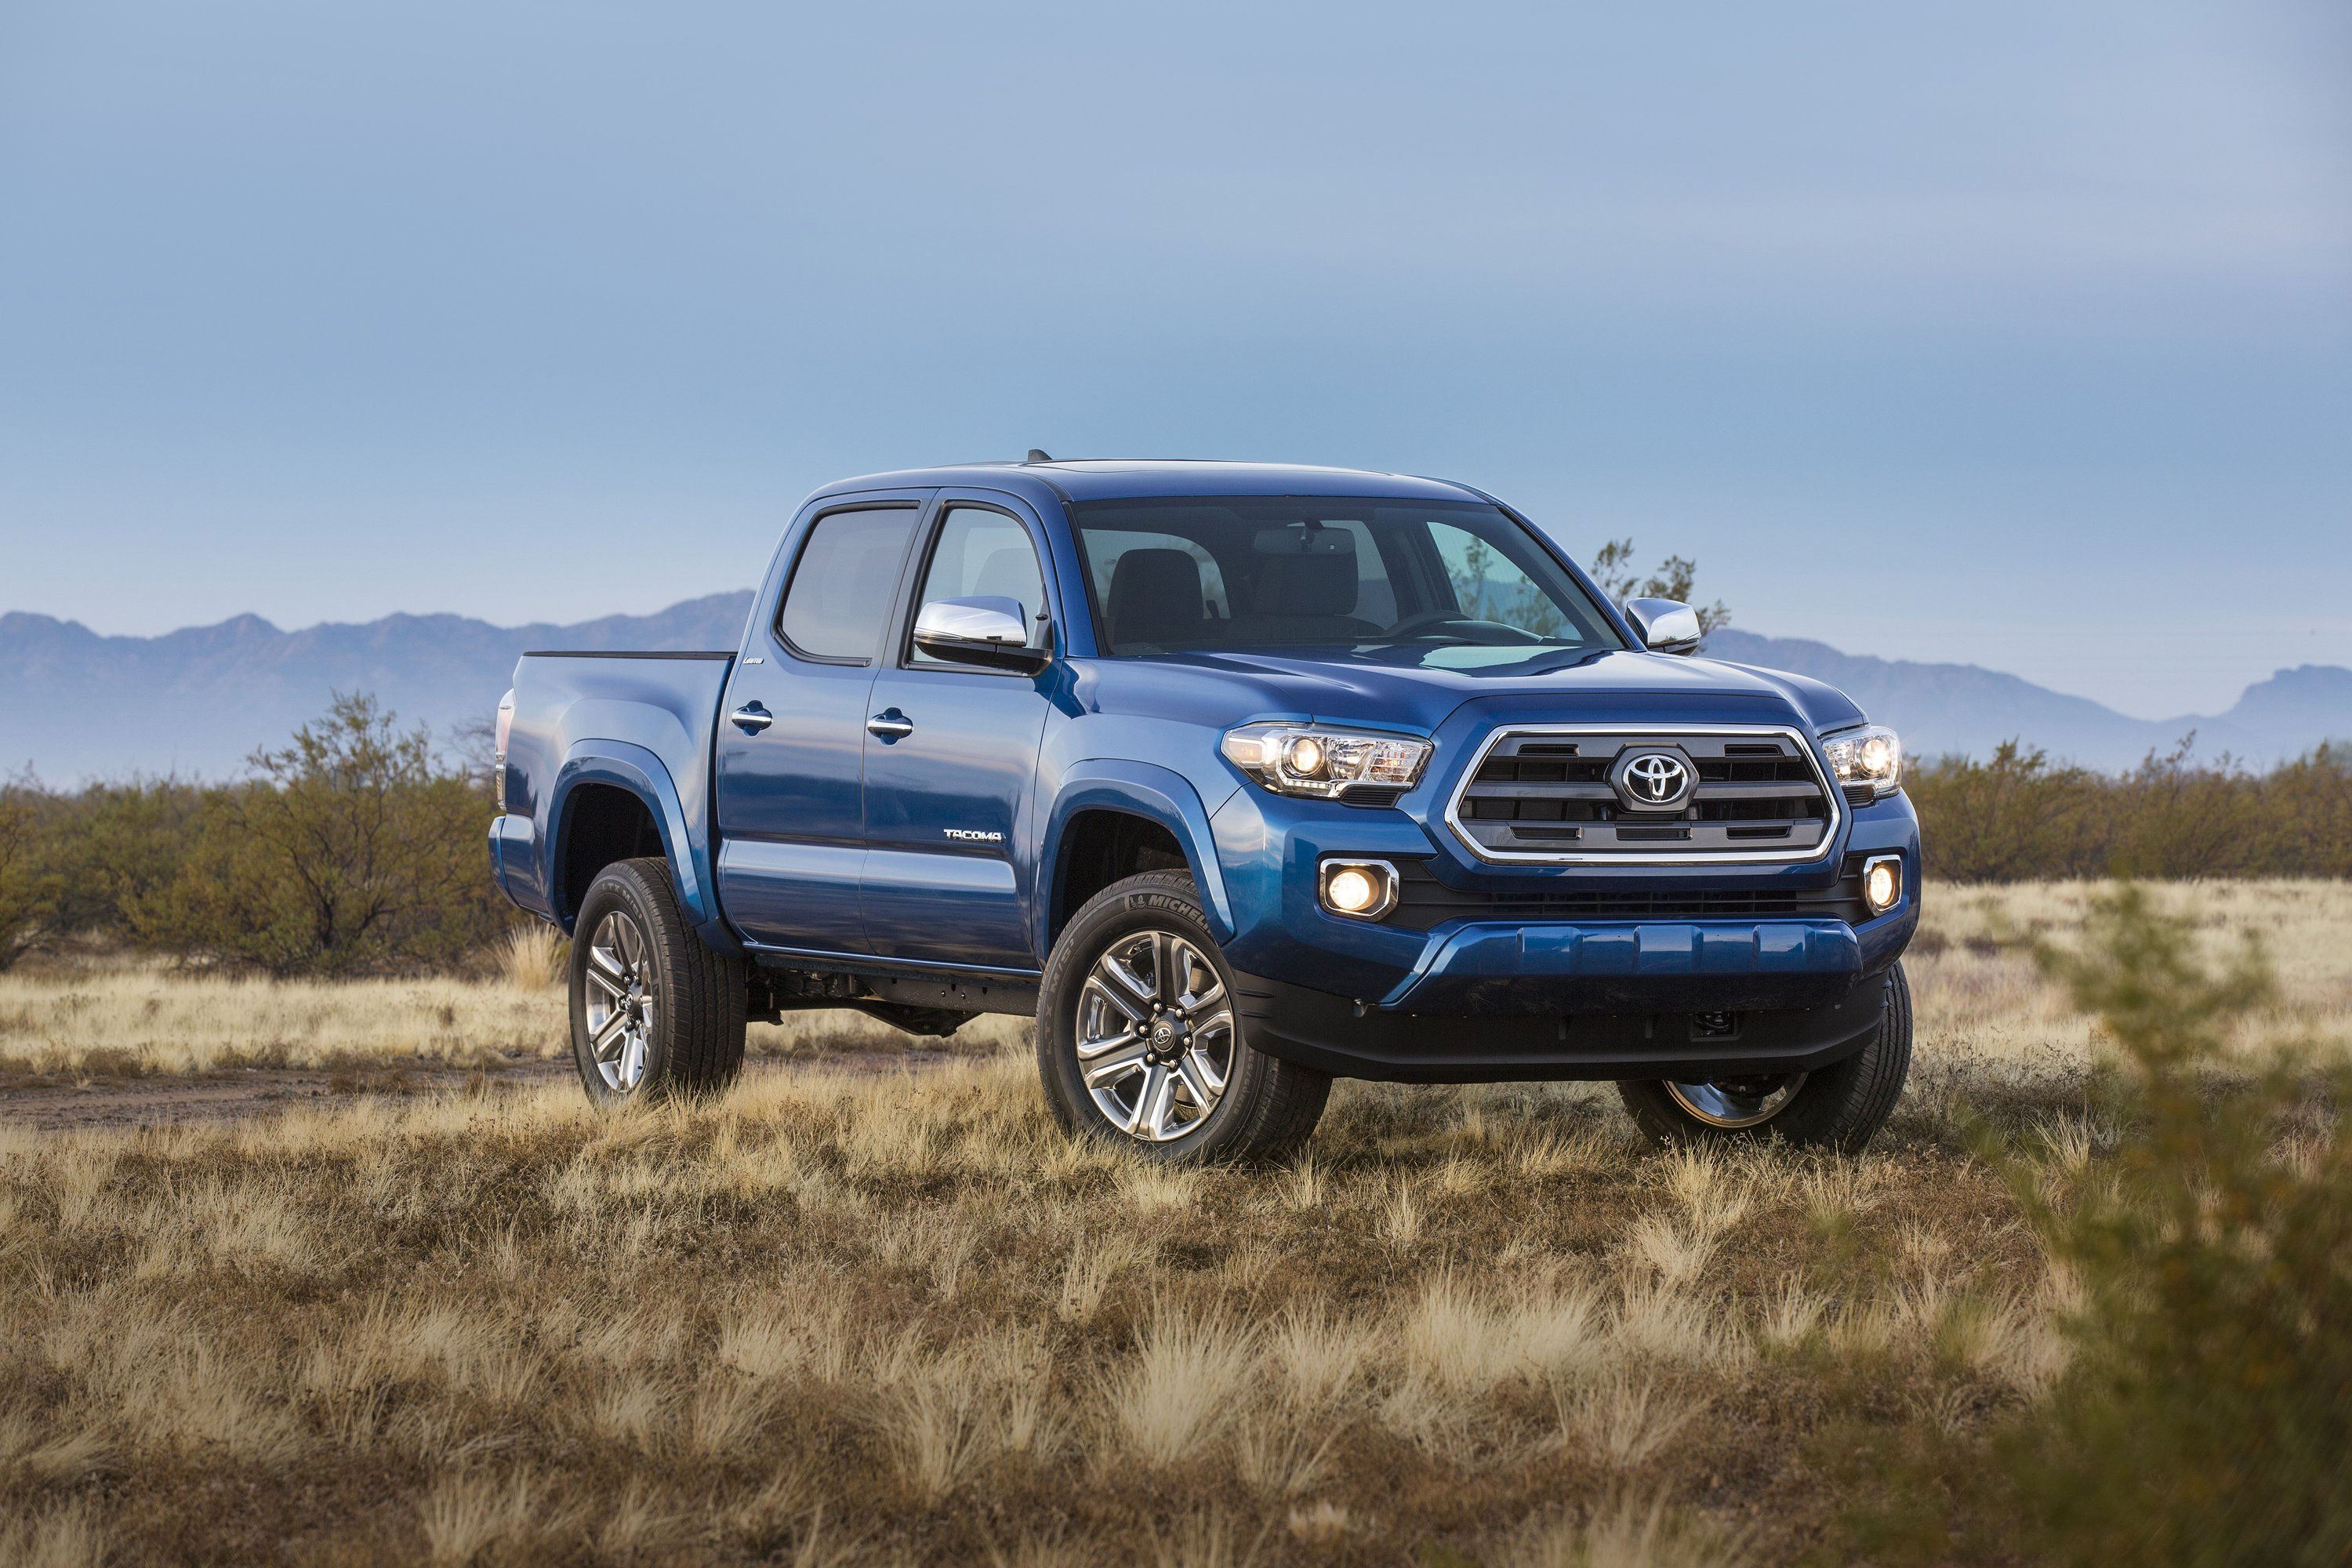 2016 Toyota Tacoma Limited DoubleCab pickup 4x4 wallpaper 3000x2000 3000x2000